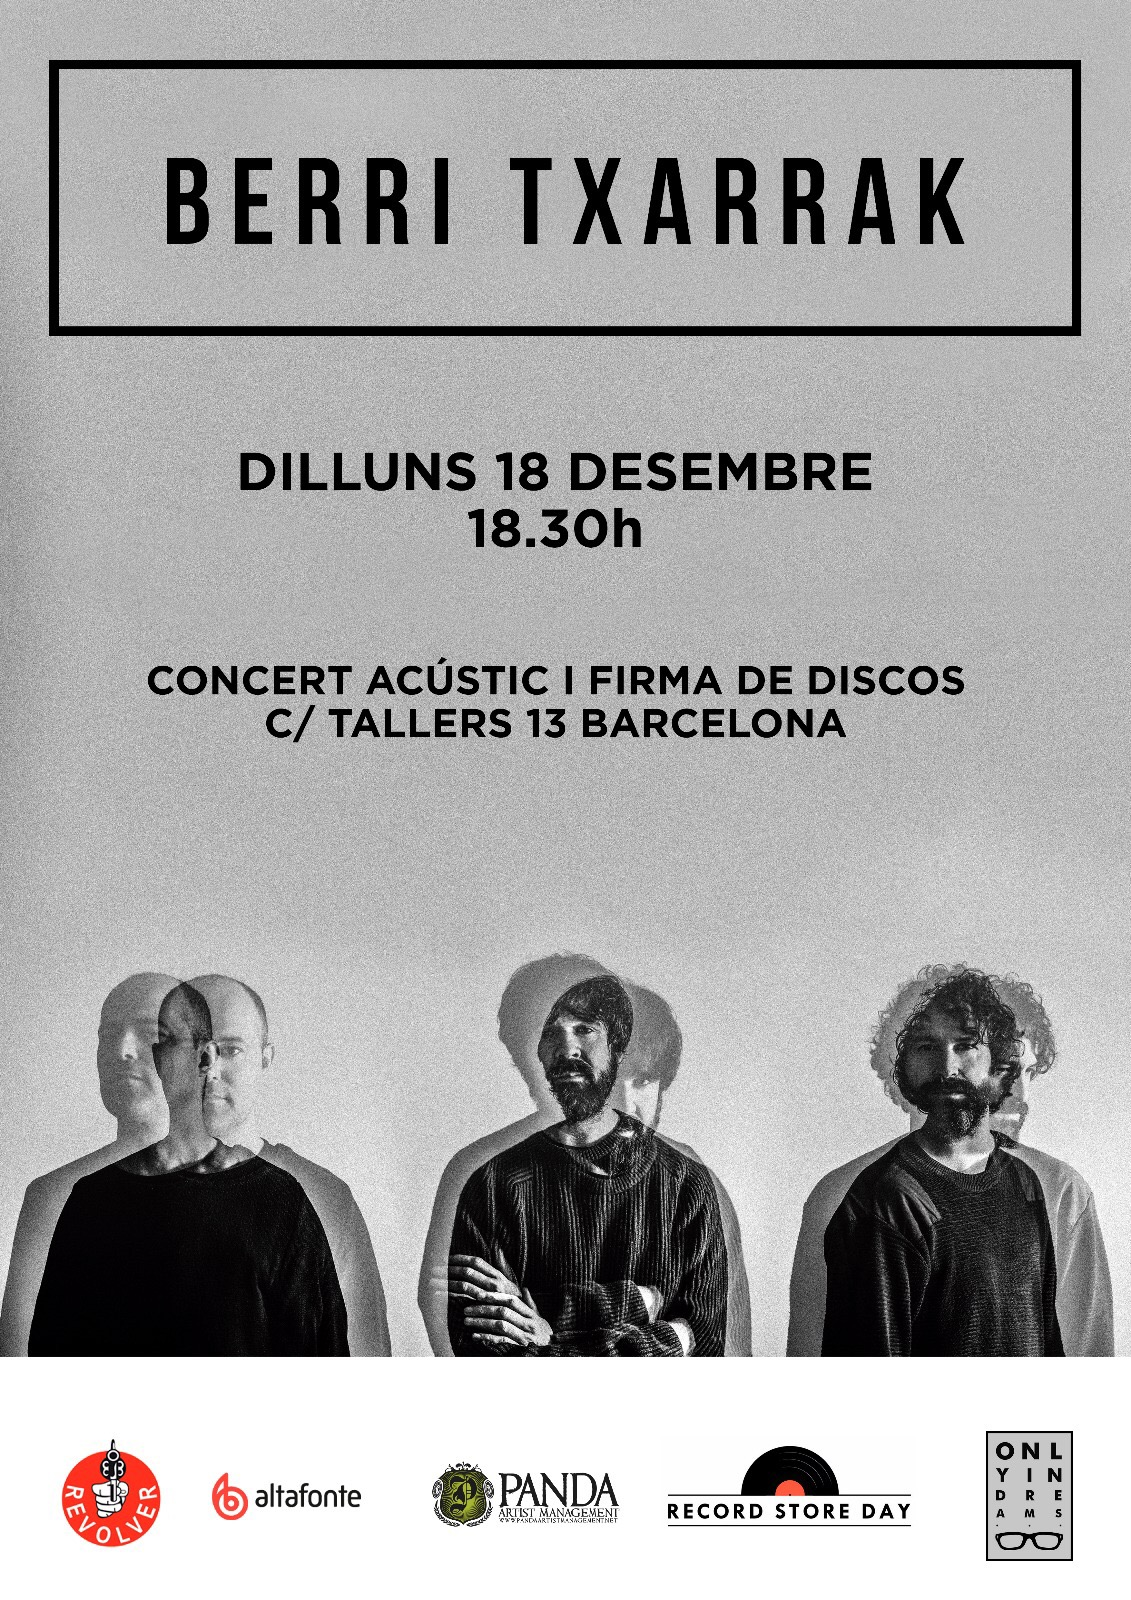 ACOUSTIC SHOWCASE + RECORD SIGNING IN BARCELONA